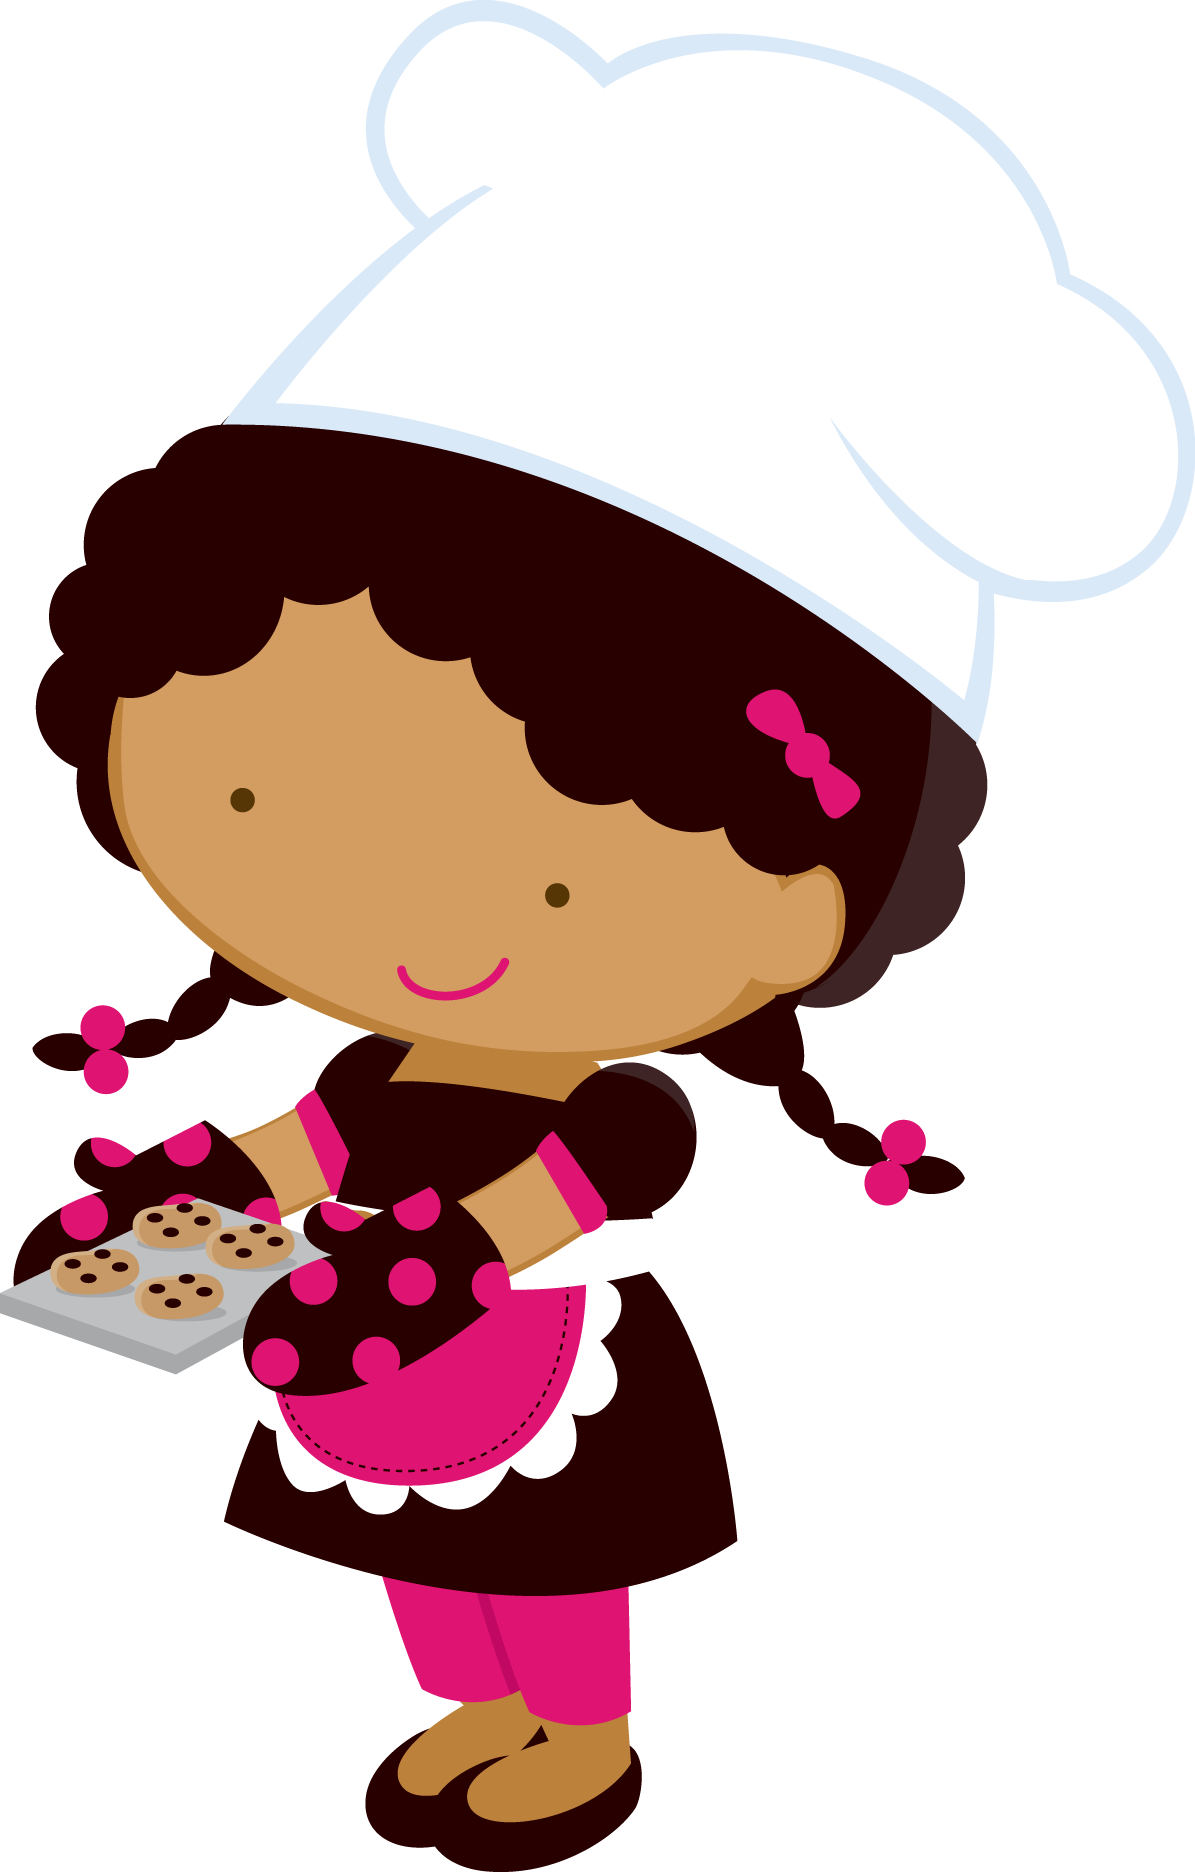 Cook clipart pastry chef. Photo by danimfalcao minus